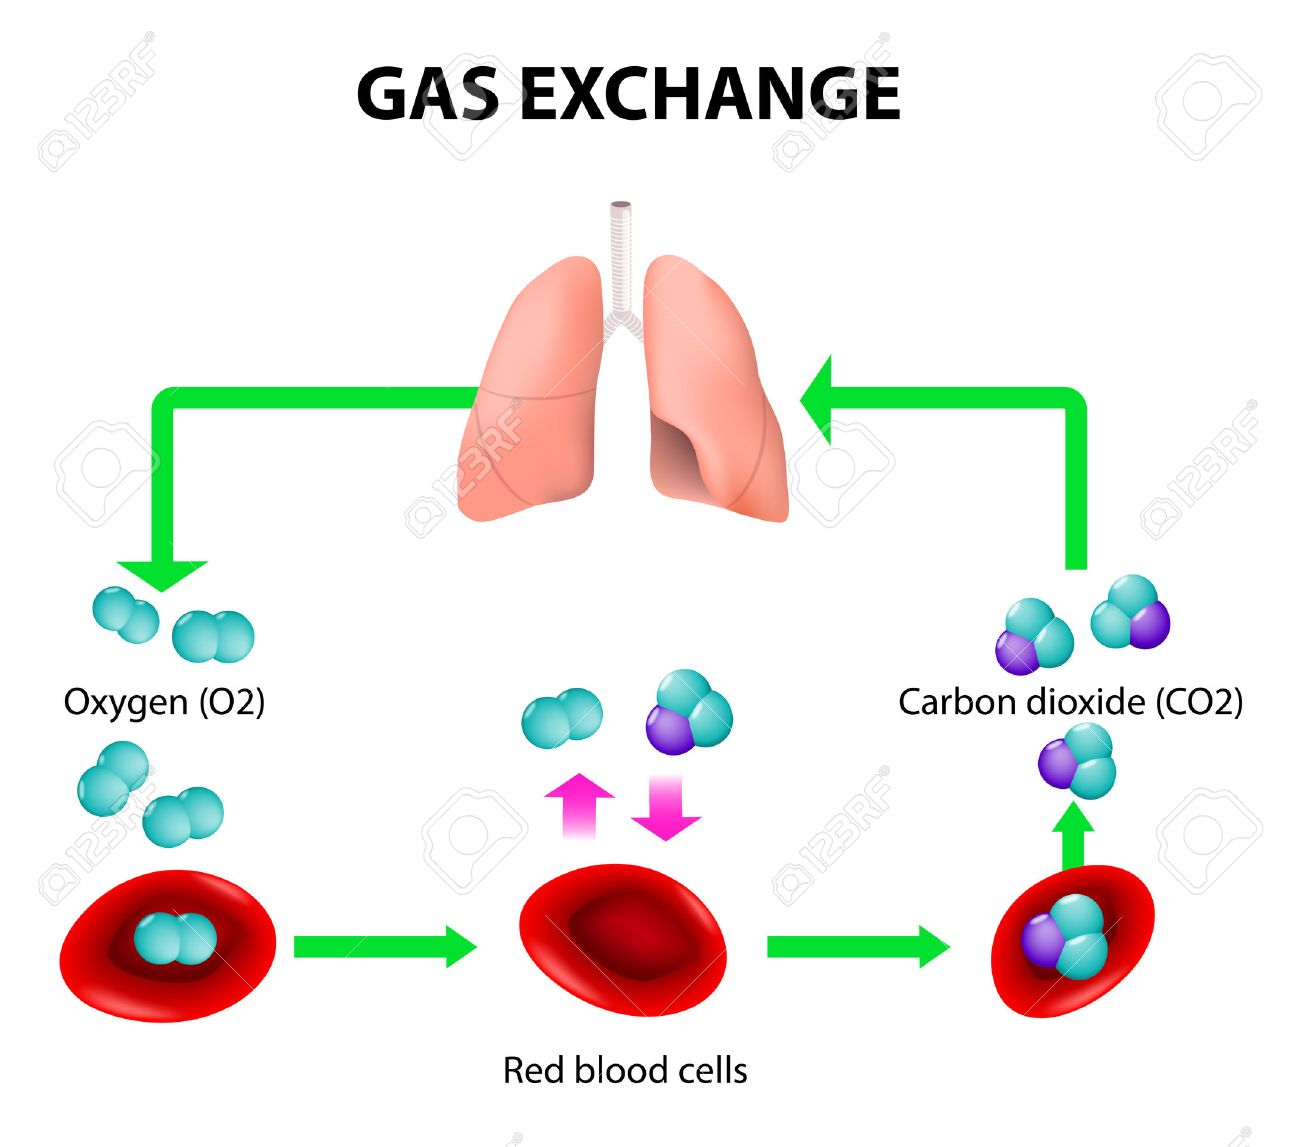 Gas exchange in humans path of red blood cells oxygen transport gas exchange in humans path of red blood cells oxygen transport cycle both ccuart Choice Image